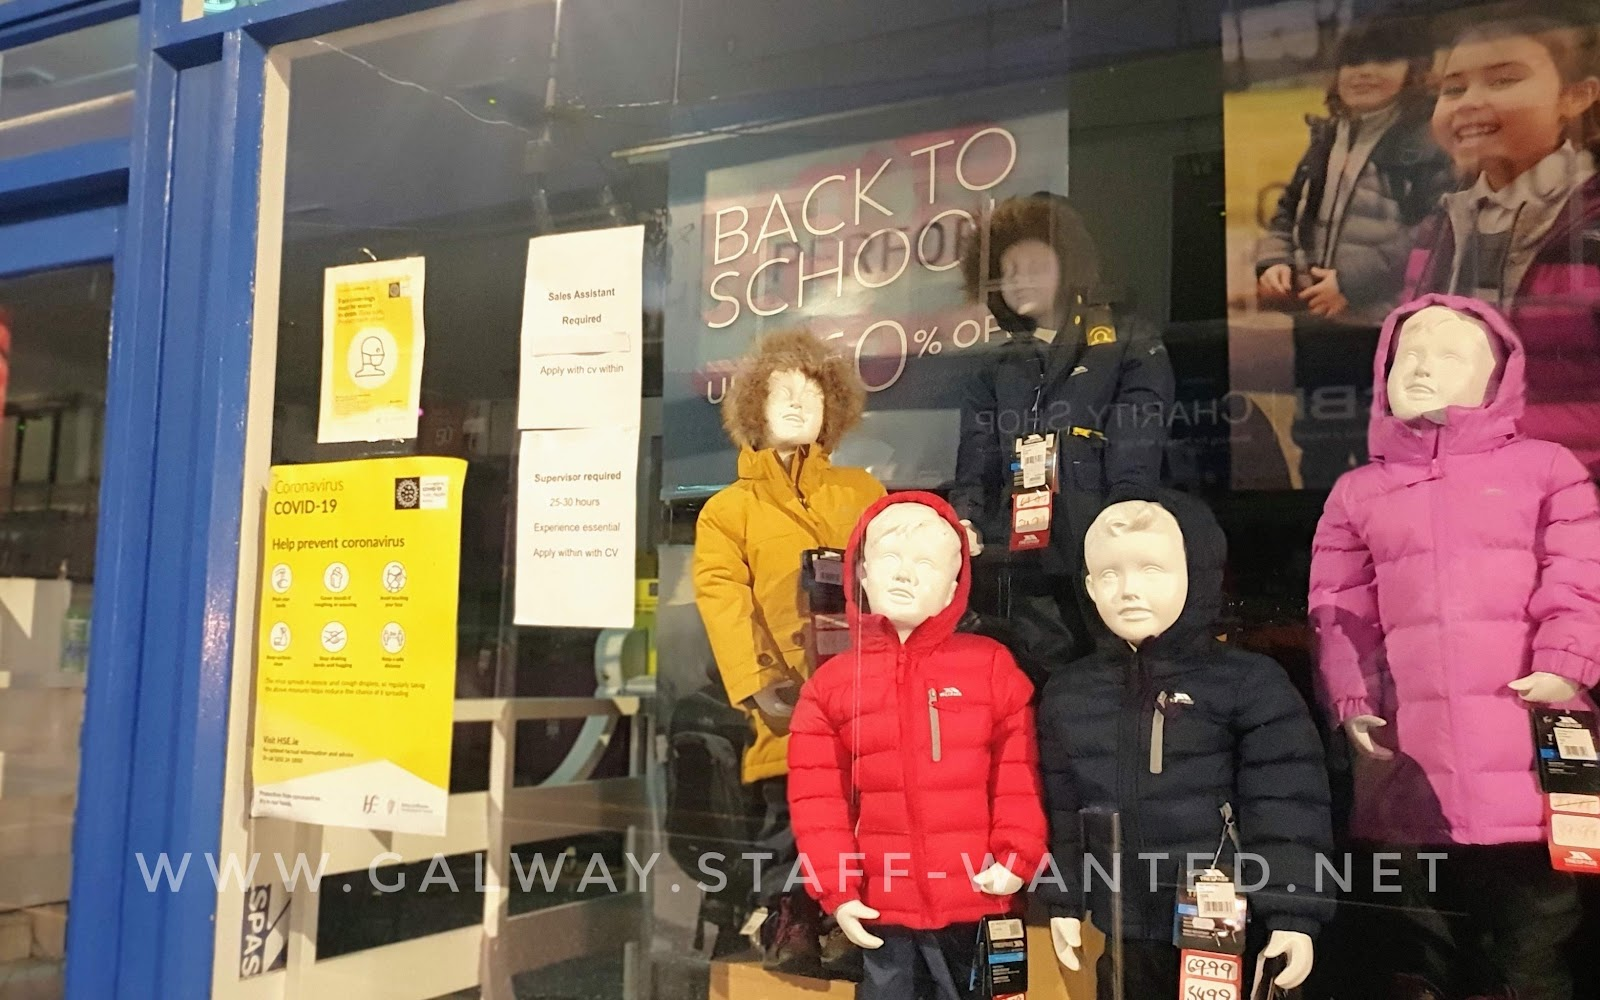 shop window with covid signs and job adverts, and back to school display - up to 50% off - models of children in outdoor wear padded jackets